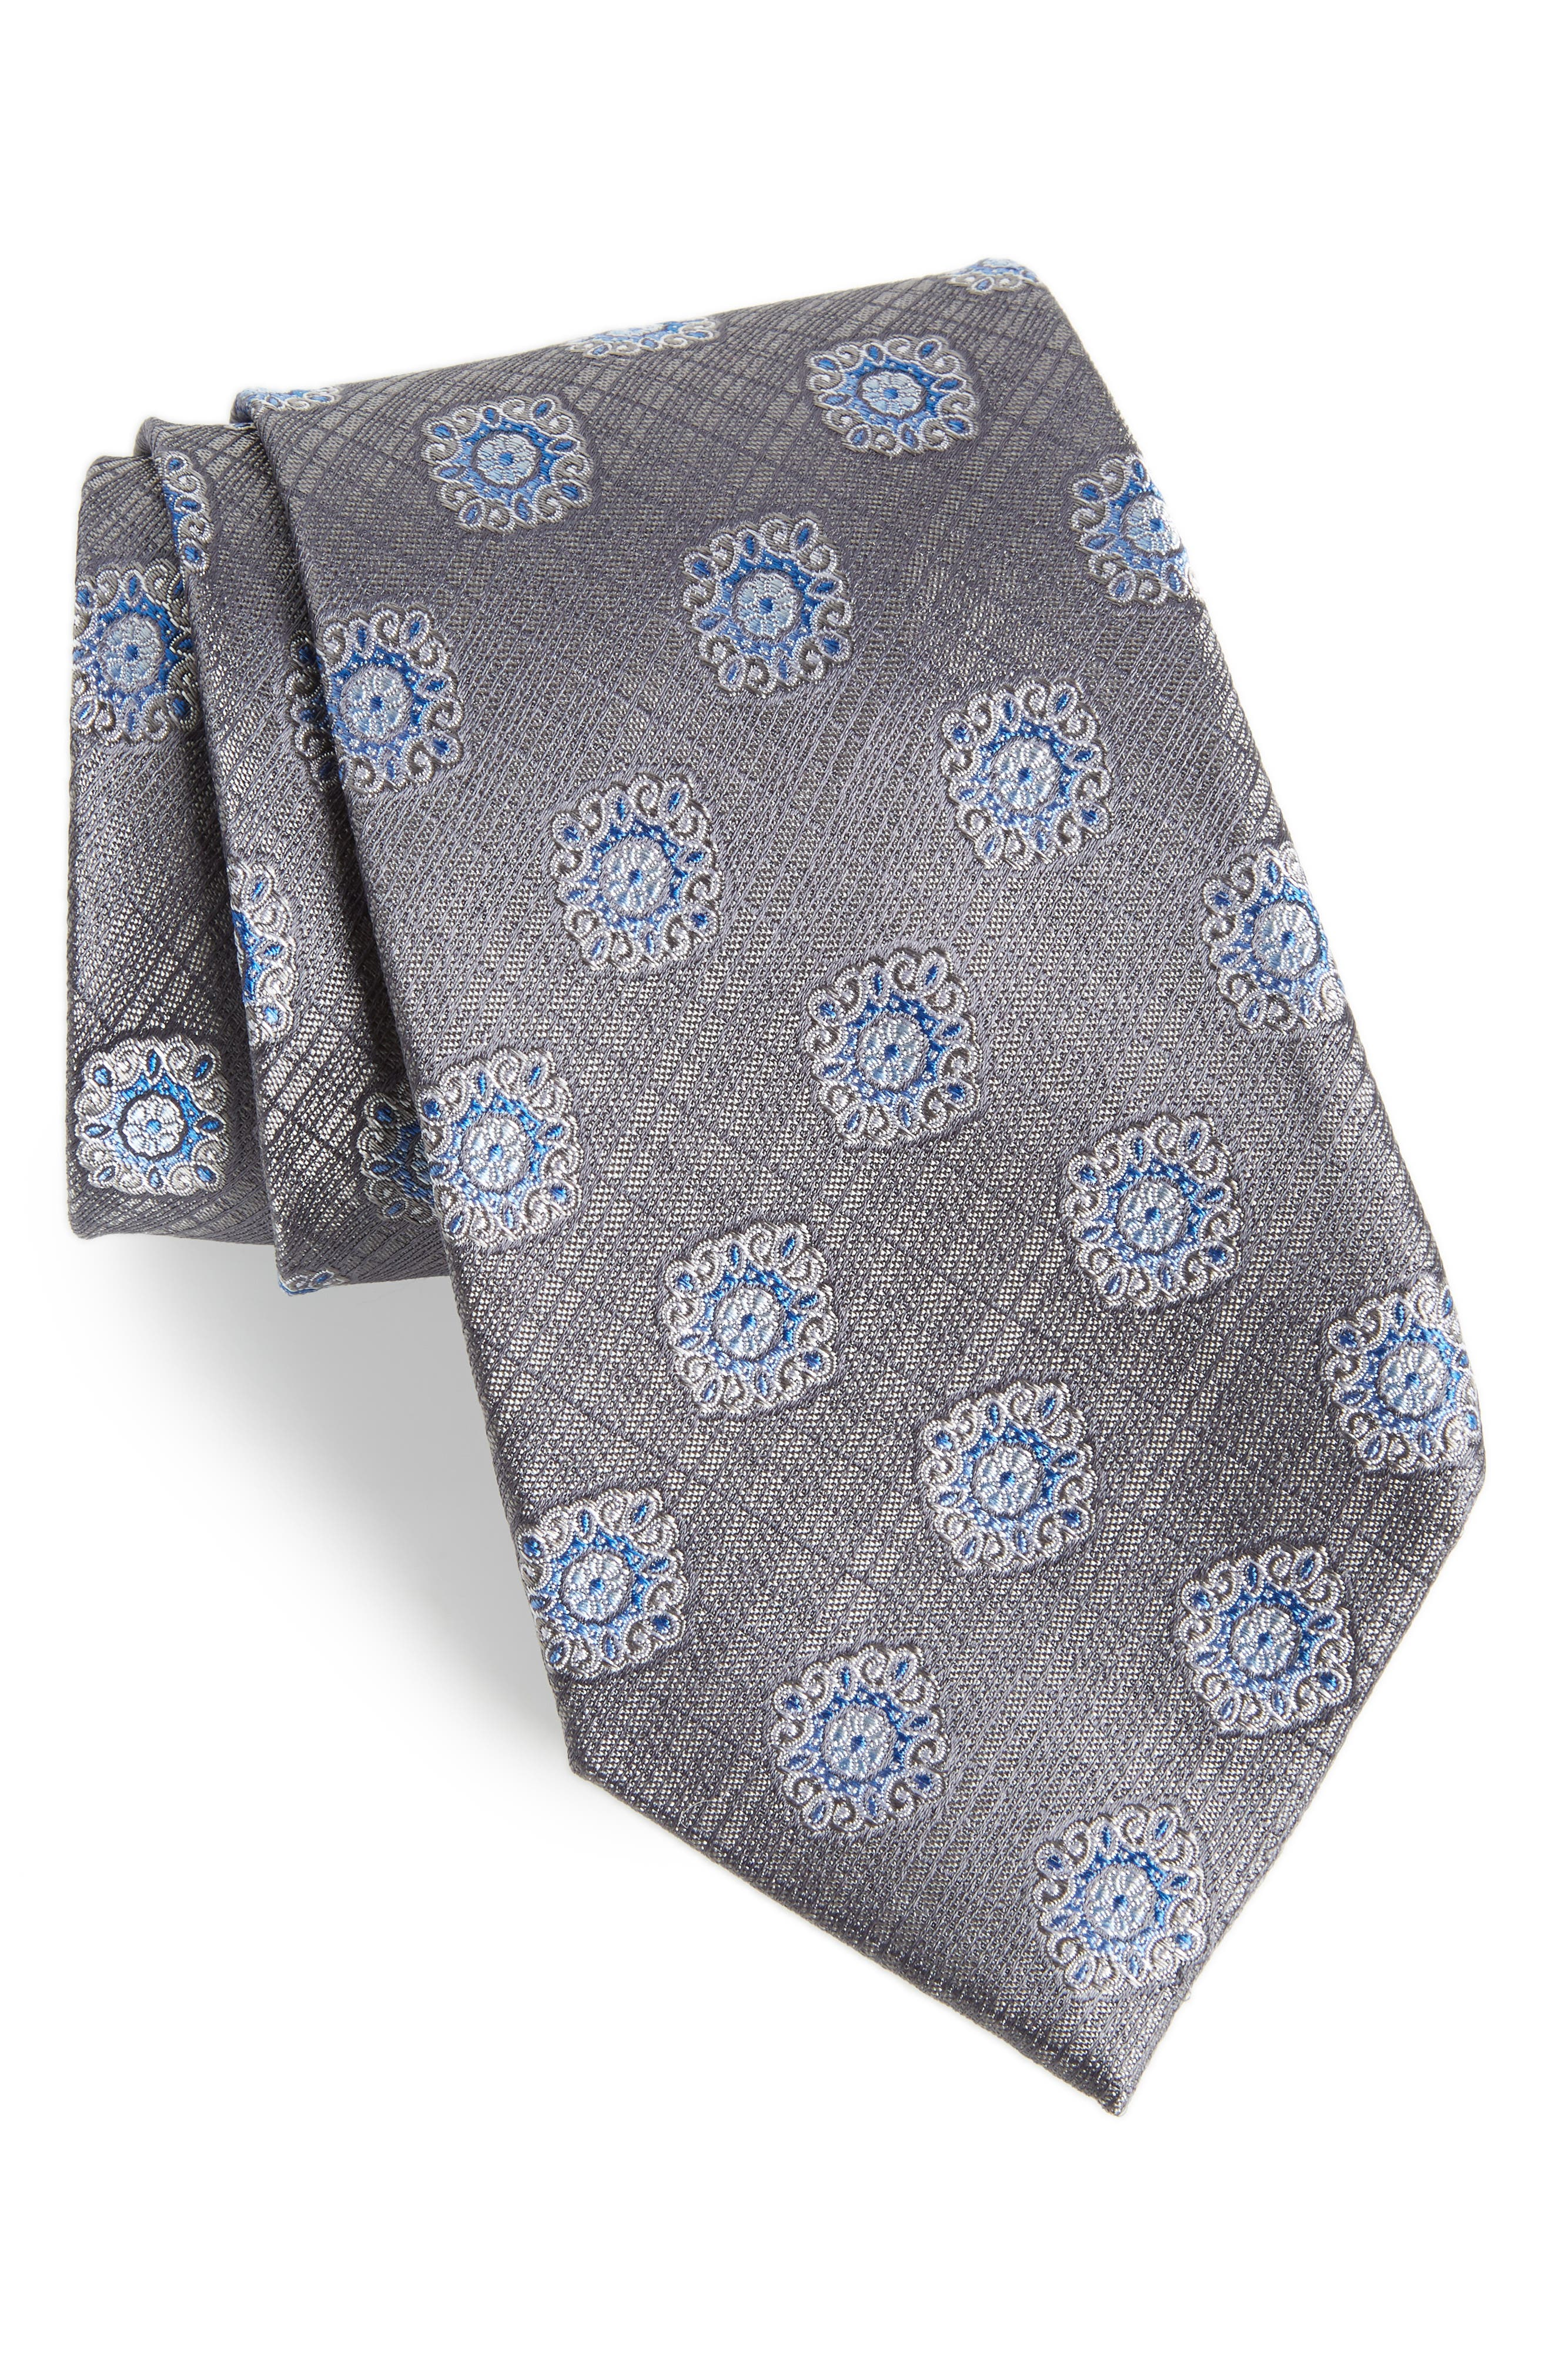 Armas Medallion Silk Tie,                         Main,                         color, 020